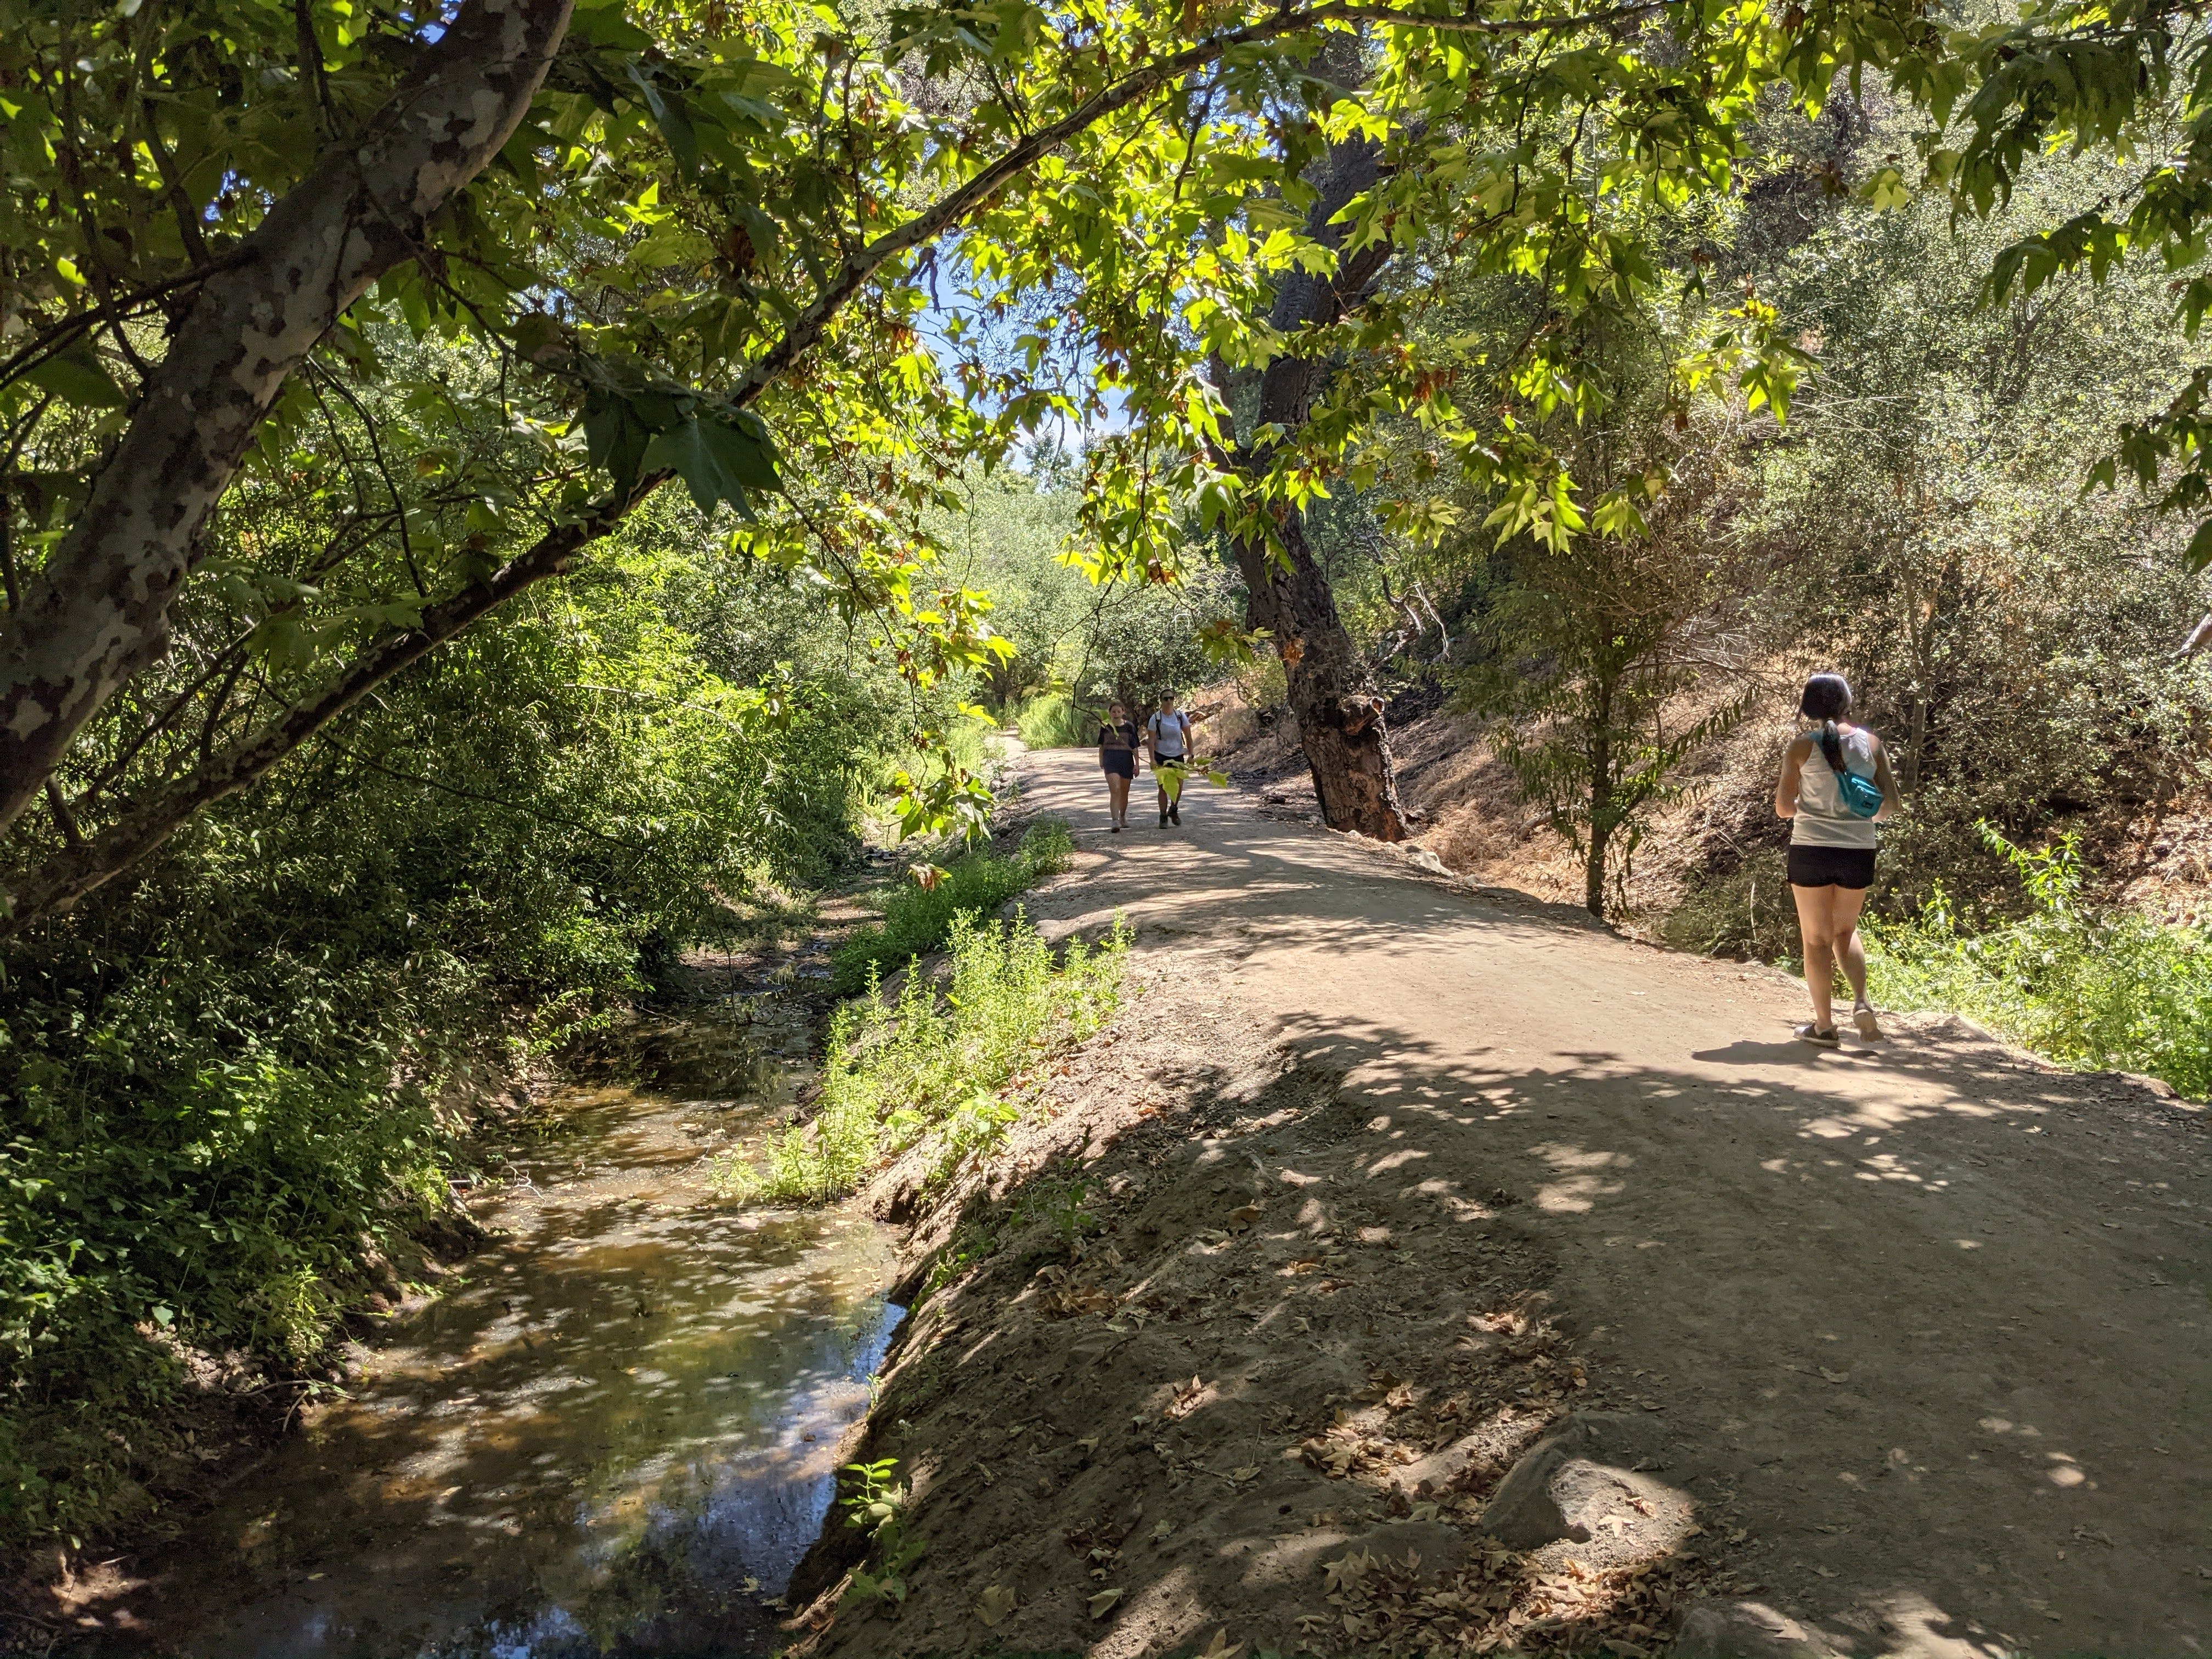 Woman walking under a canopy of trees next to a stream on a hiking trail in Whiting Ranch Wilderness Park in Orange County